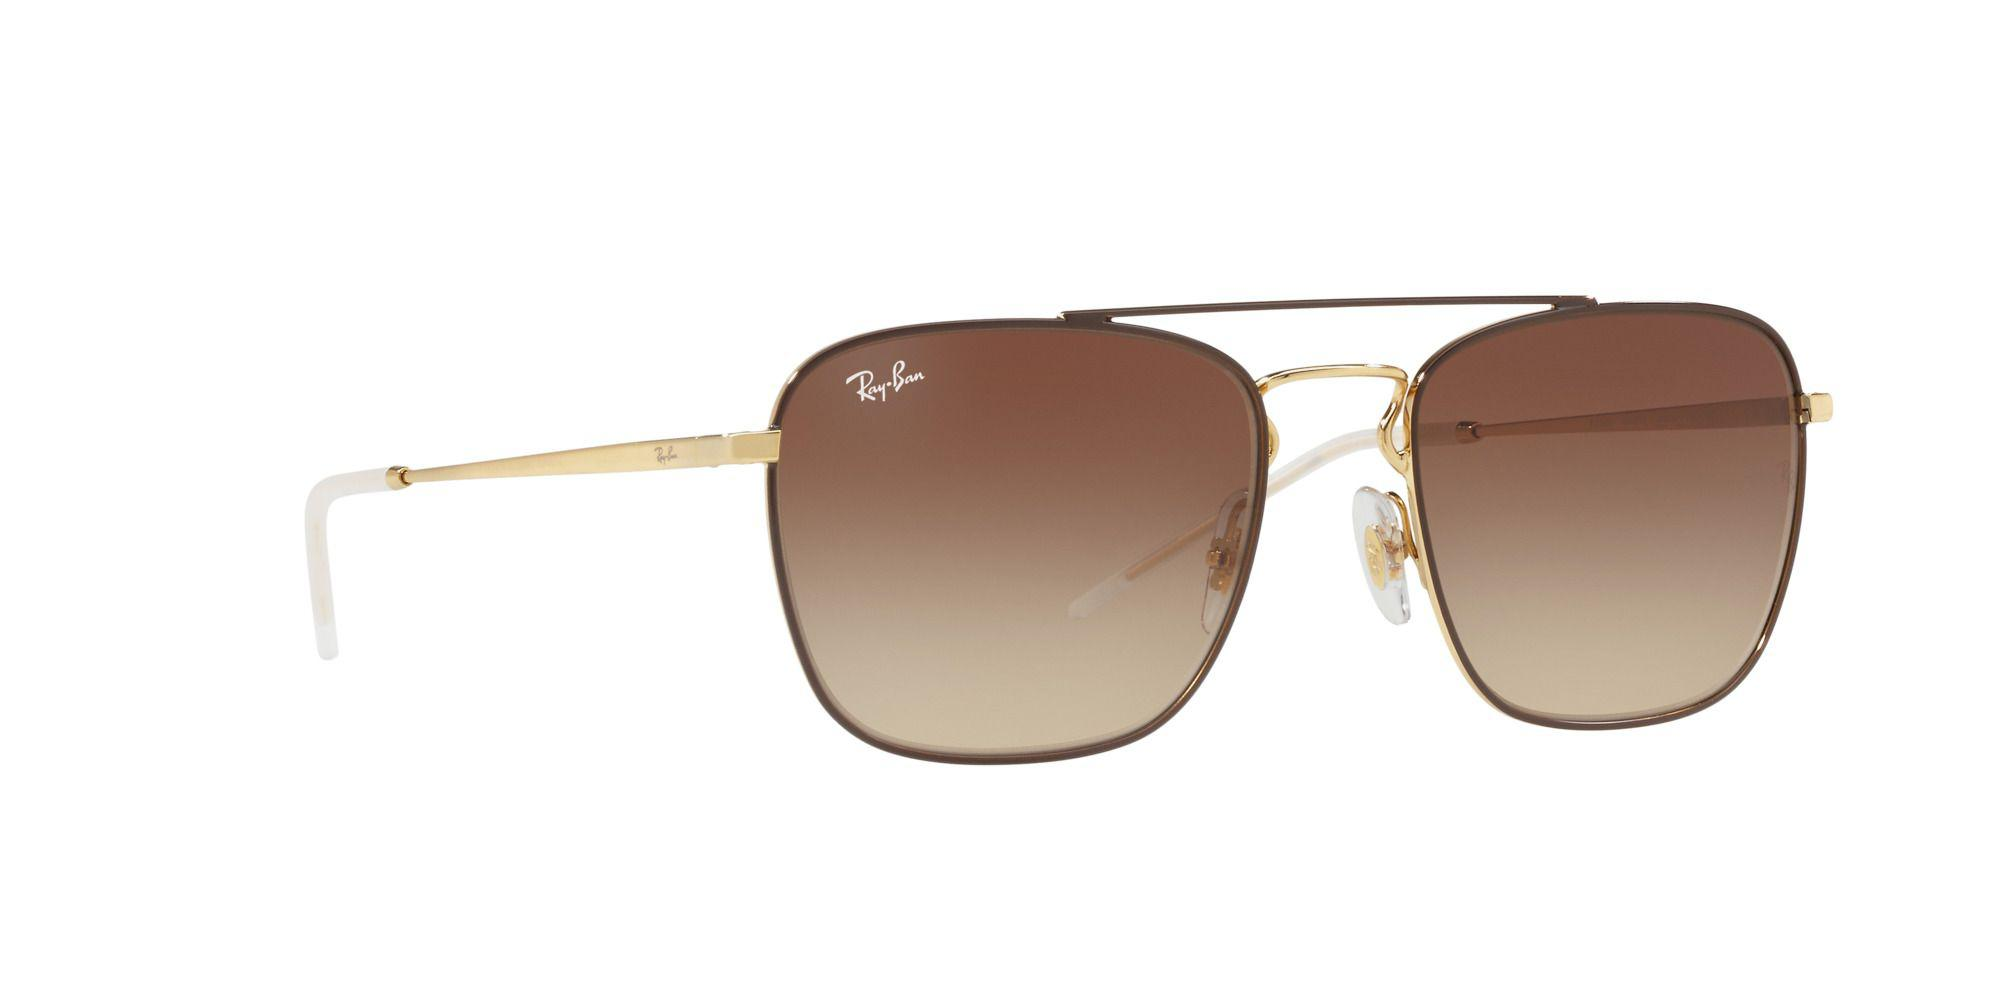 c6a8d6630fc Ray-Ban Brown Rb3588 Square Sunglasses in Brown for Men - Lyst